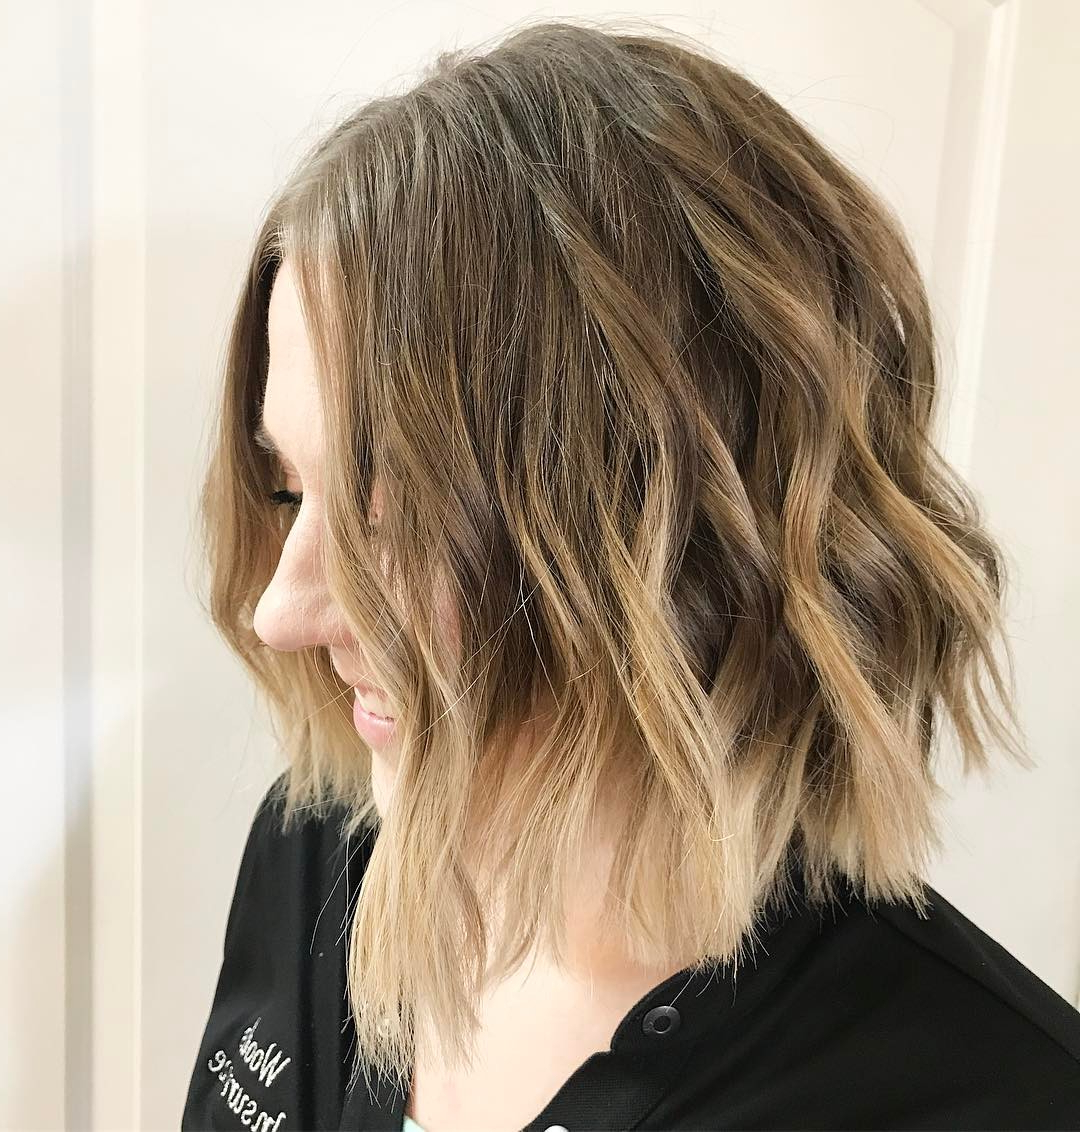 10 Beautiful Medium Bob Haircuts &edgy Looks: Shoulder Length Throughout Nape Length Curly Balayage Bob Hairstyles (View 2 of 20)